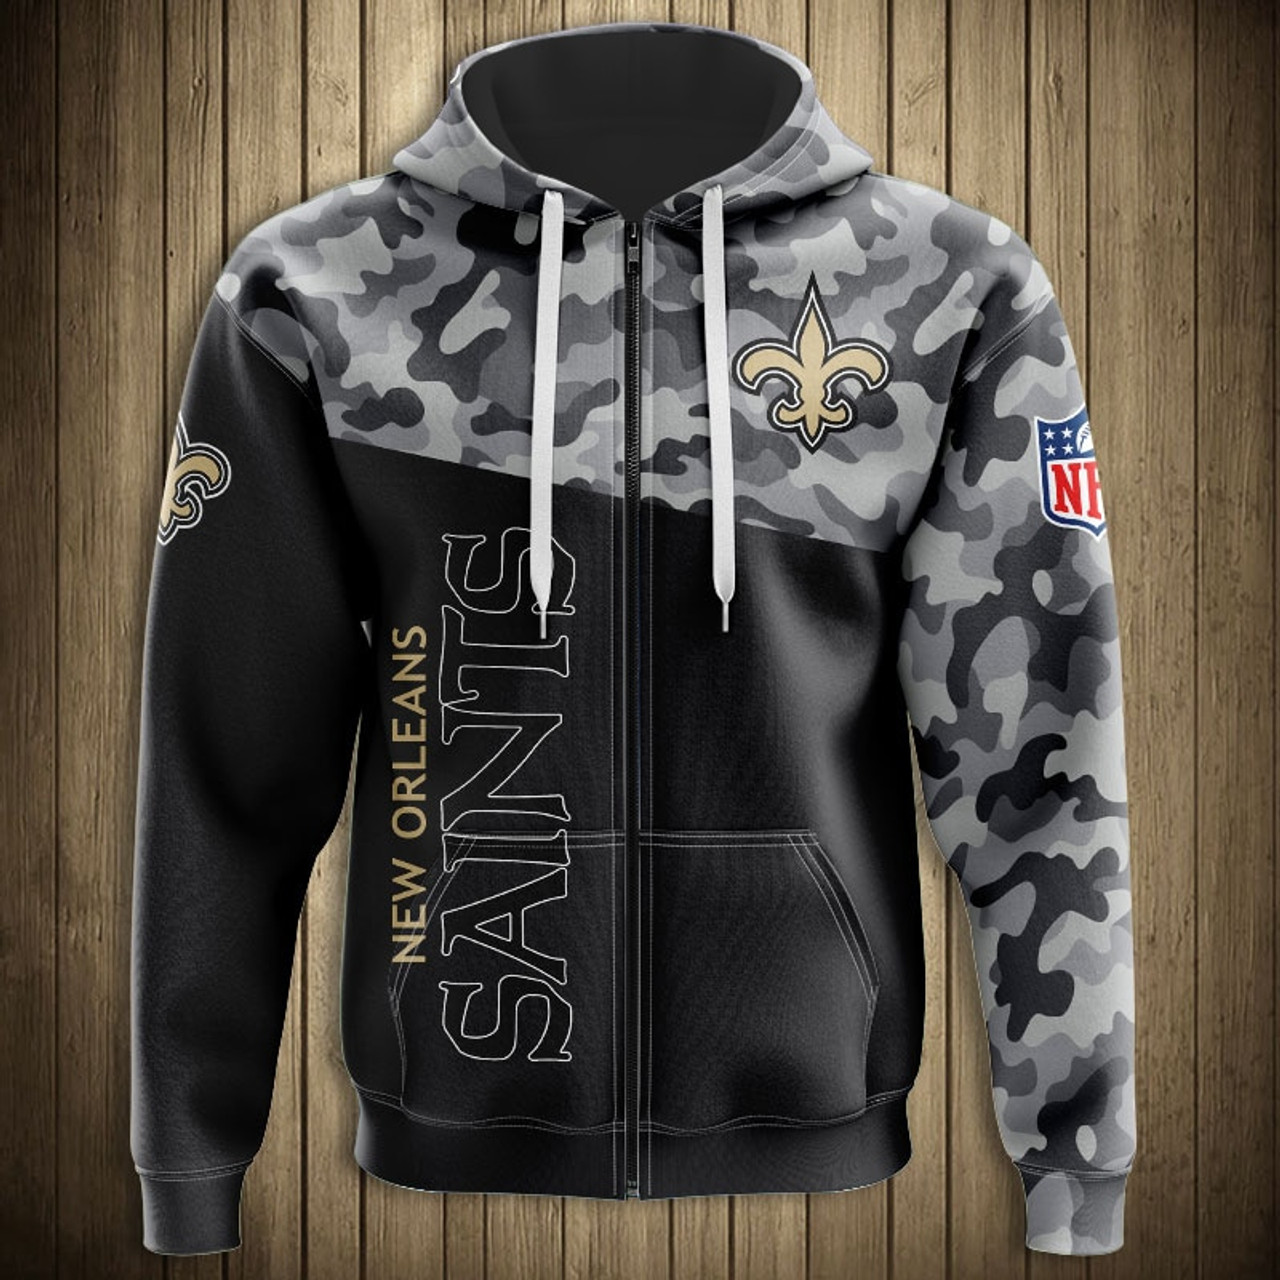 brand new 1ca8f 405c3 **(OFFICIAL-N.F.L.NEW-ORLEANS-SAINTS-CAMO.DESIGN-ZIPPERED-HOODIES/3D-CUSTOM-SAINTS-LOGOS  & OFFICIAL-SAINTS-TEAM-COLORS/NICE-3D-DETAILED-GRAPHIC-PRINTE...